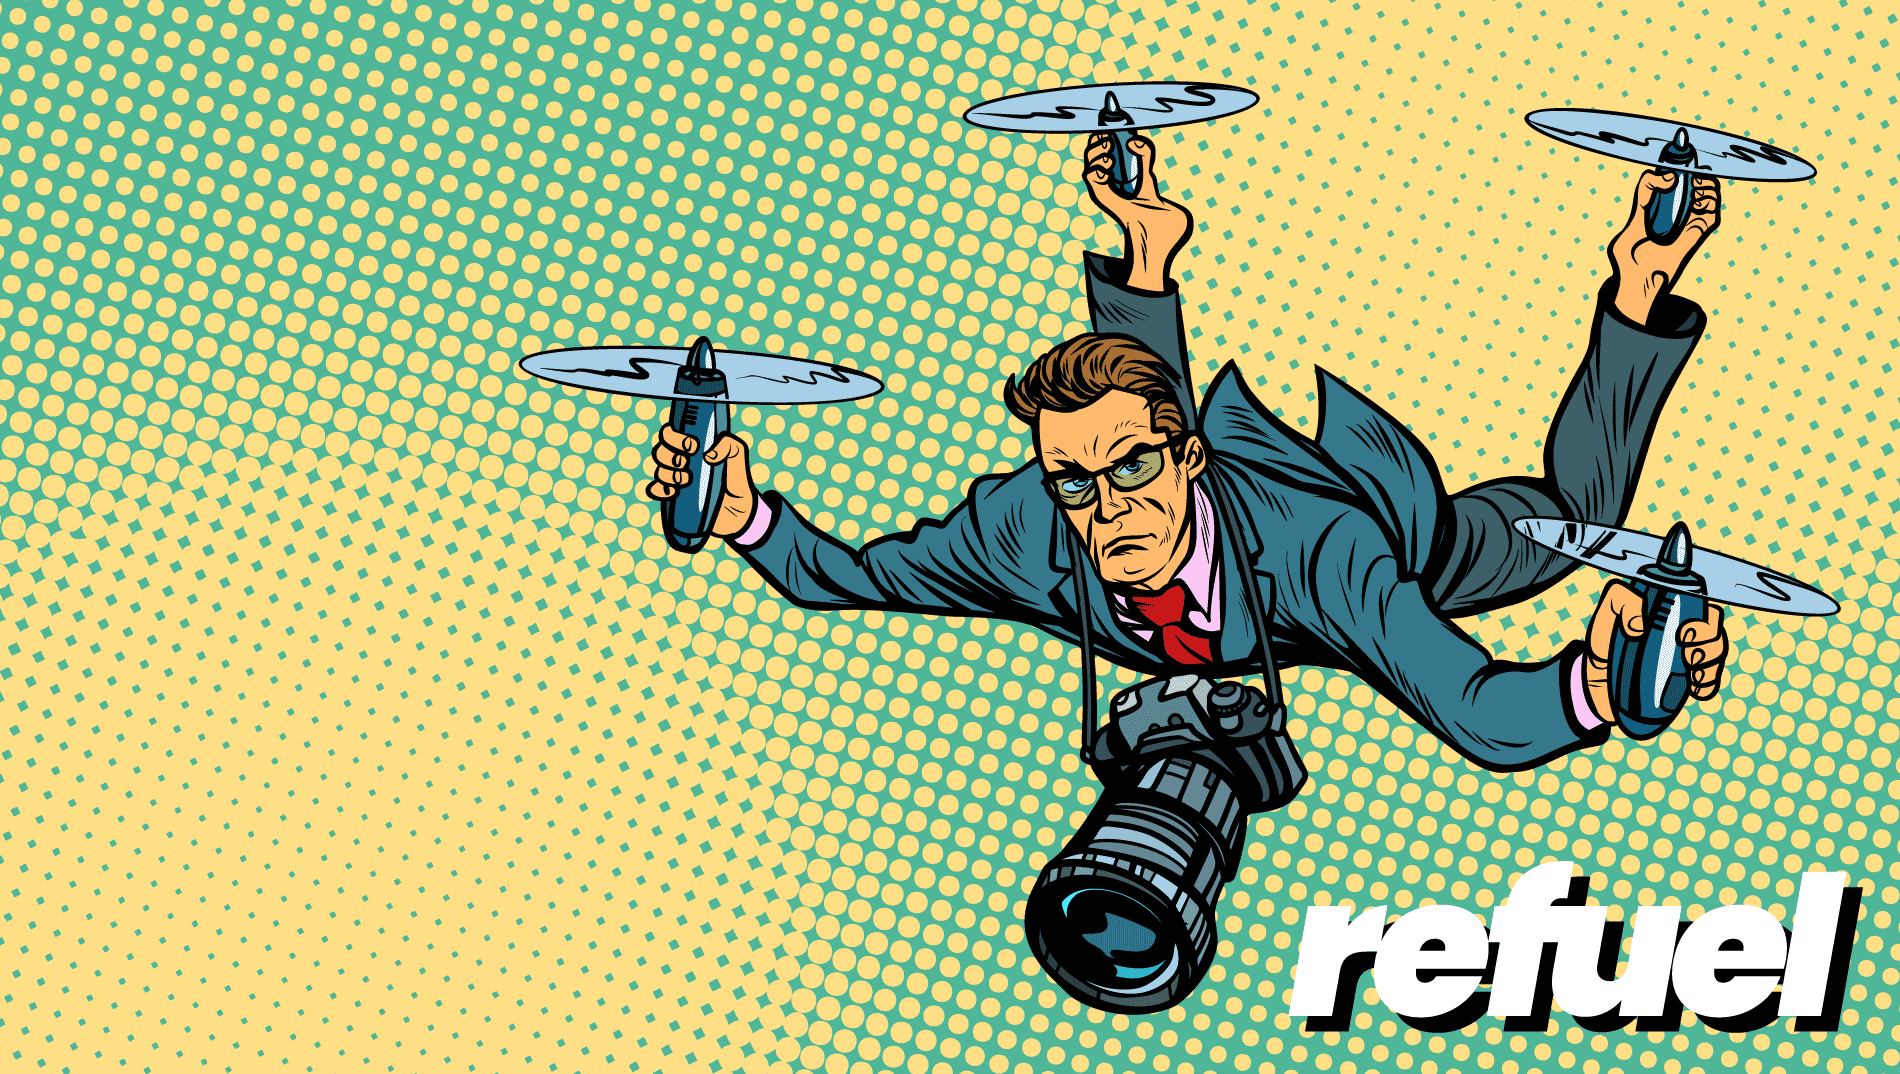 Join the Refuel team as our Videographer